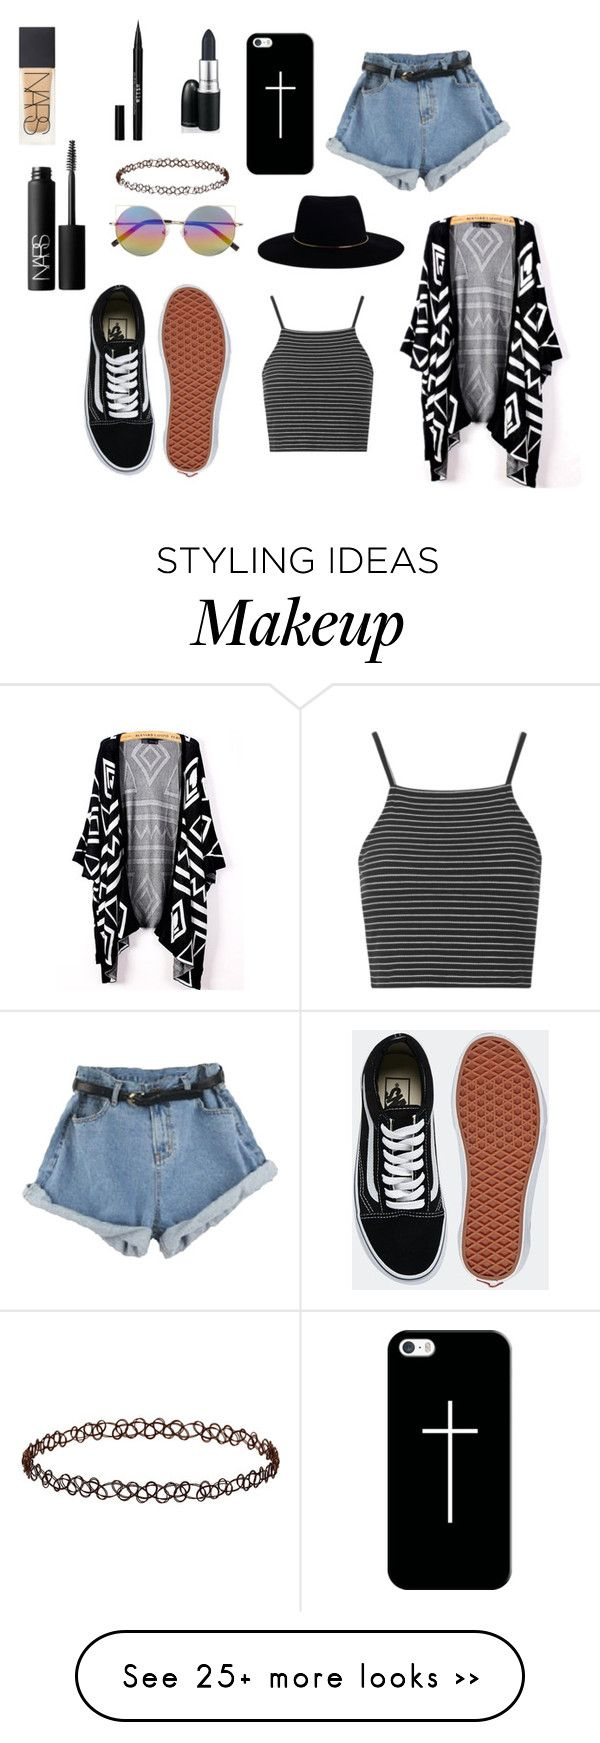 """summer"" by charlfprotet on Polyvore featuring Topshop, Zimmermann, Vans, Linda Farrow, Casetify, NARS Cosmetics and Stila"